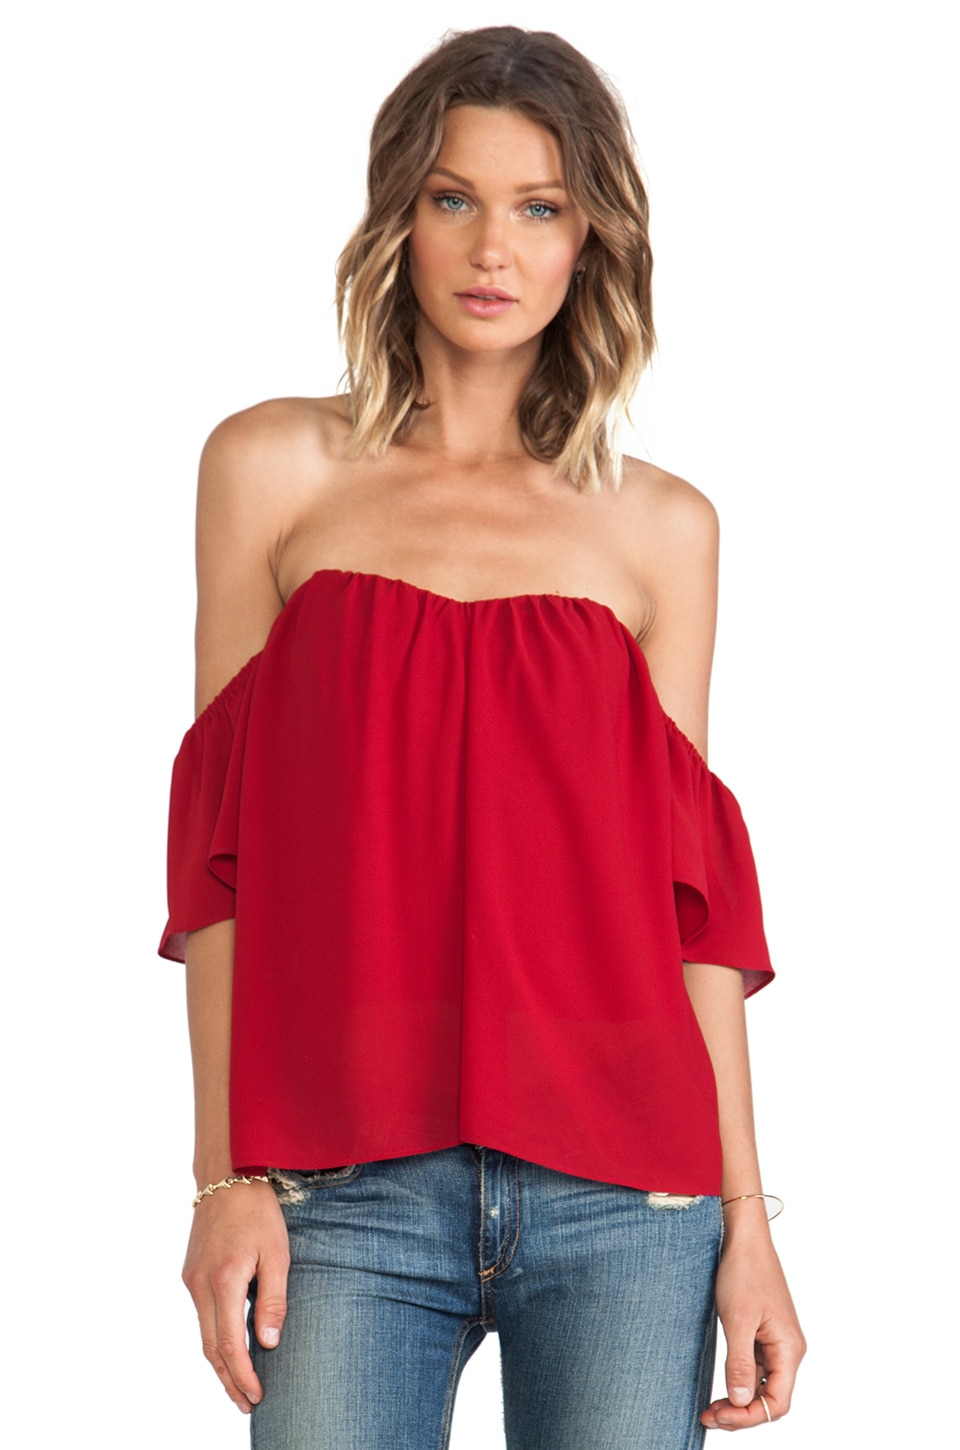 Line & Dot Blonde Ambition Flutter Top in Maroon